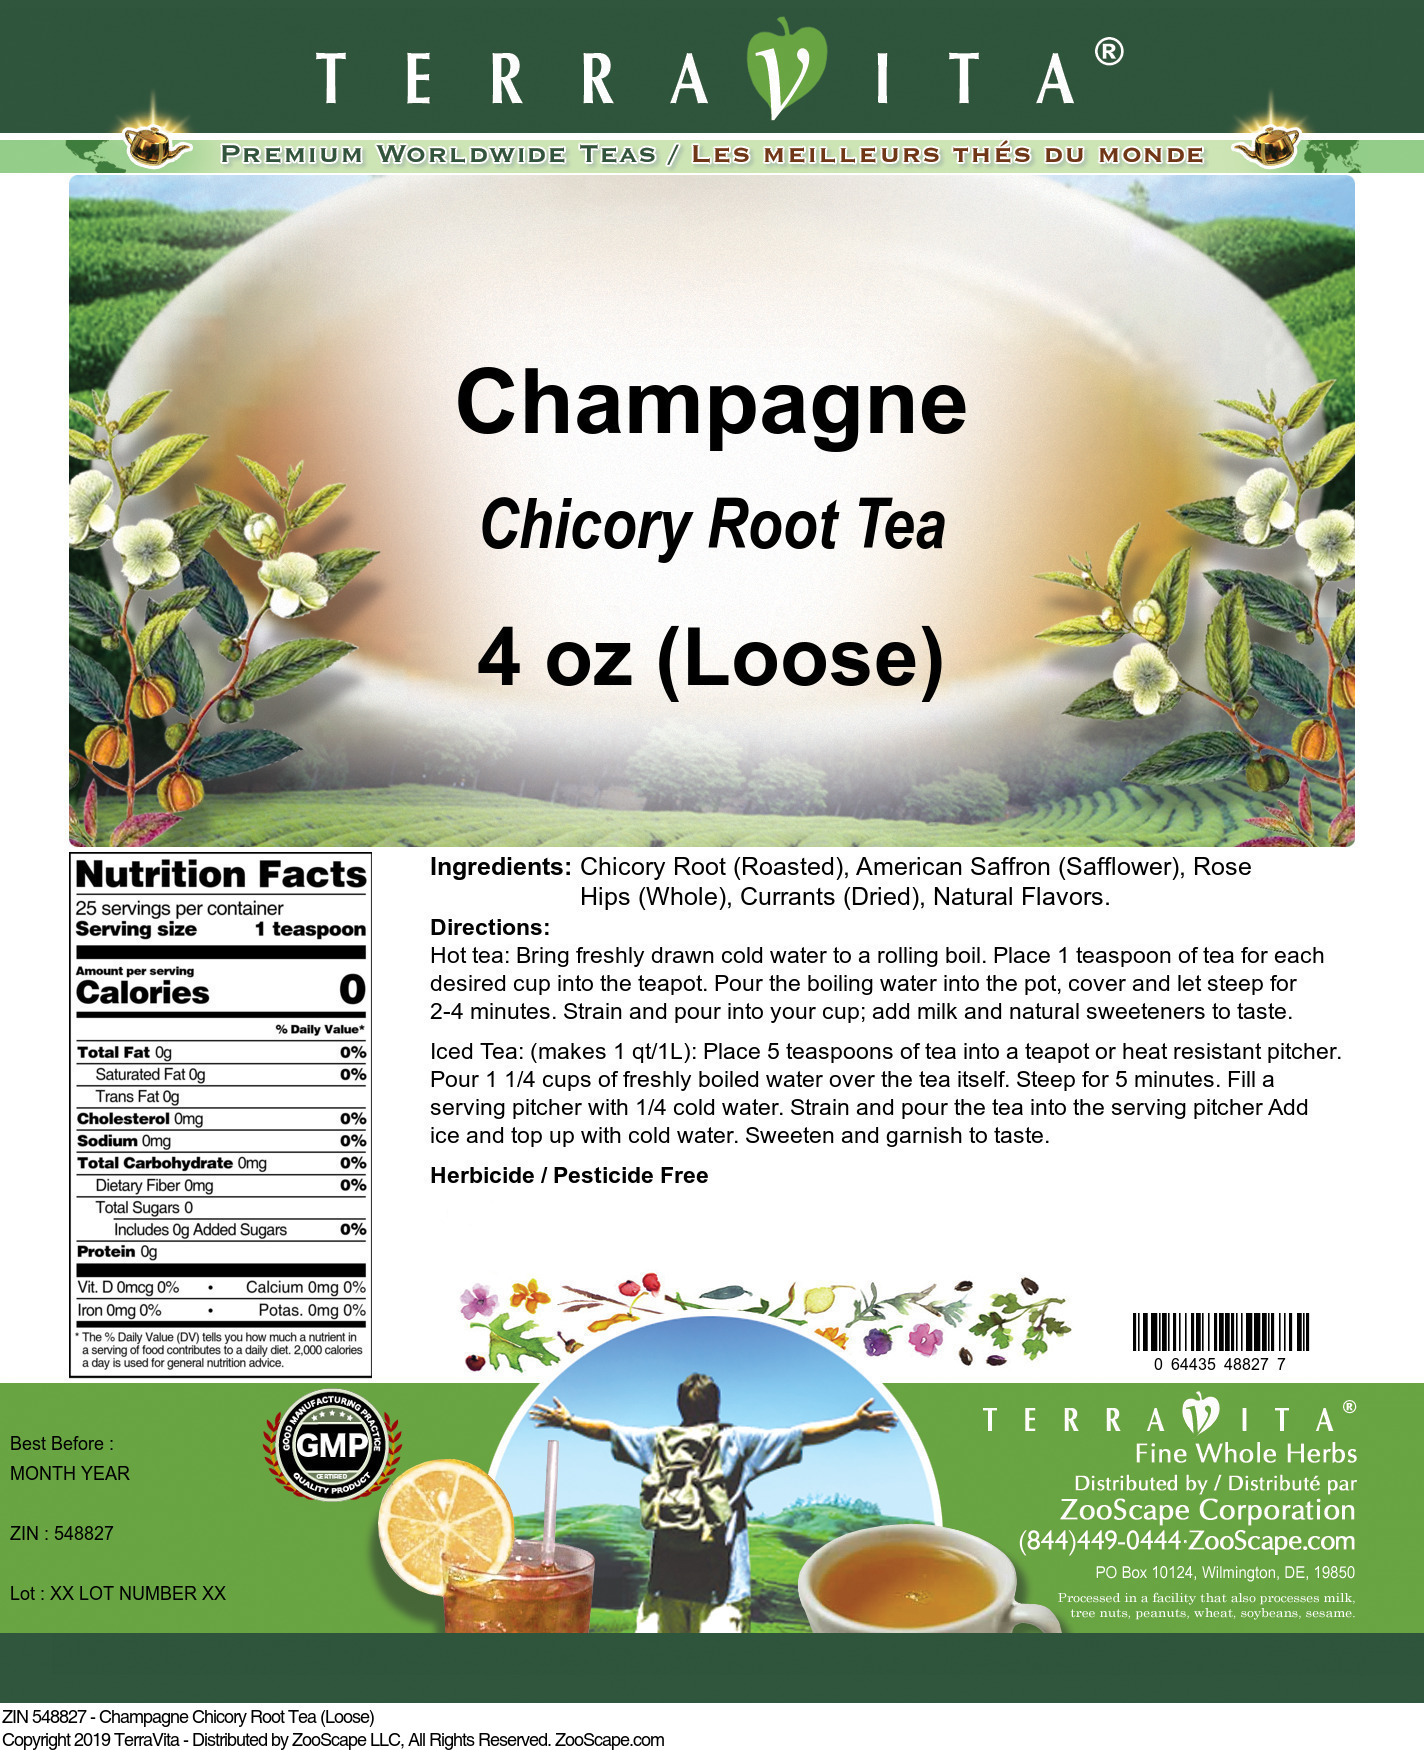 Champagne Chicory Root